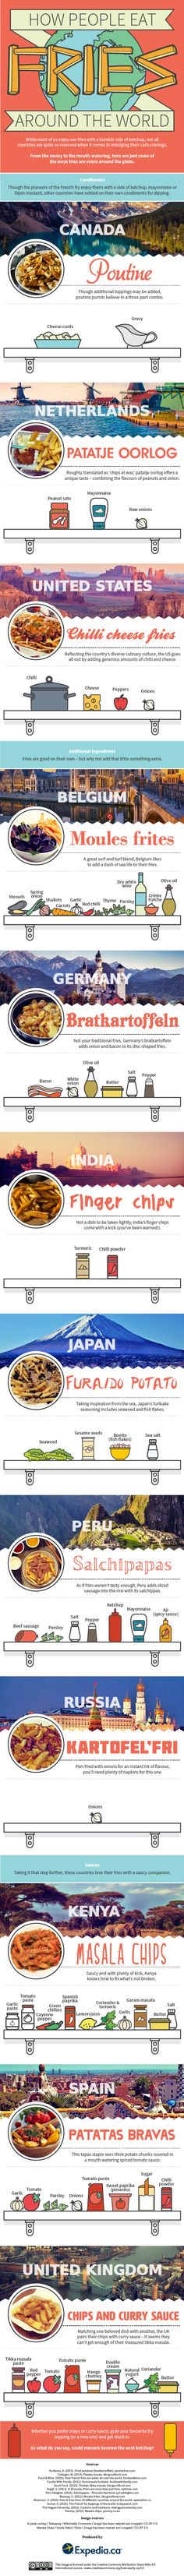 From the messy to the mouth-watering, here are just some of the ways fries are eaten around the world.